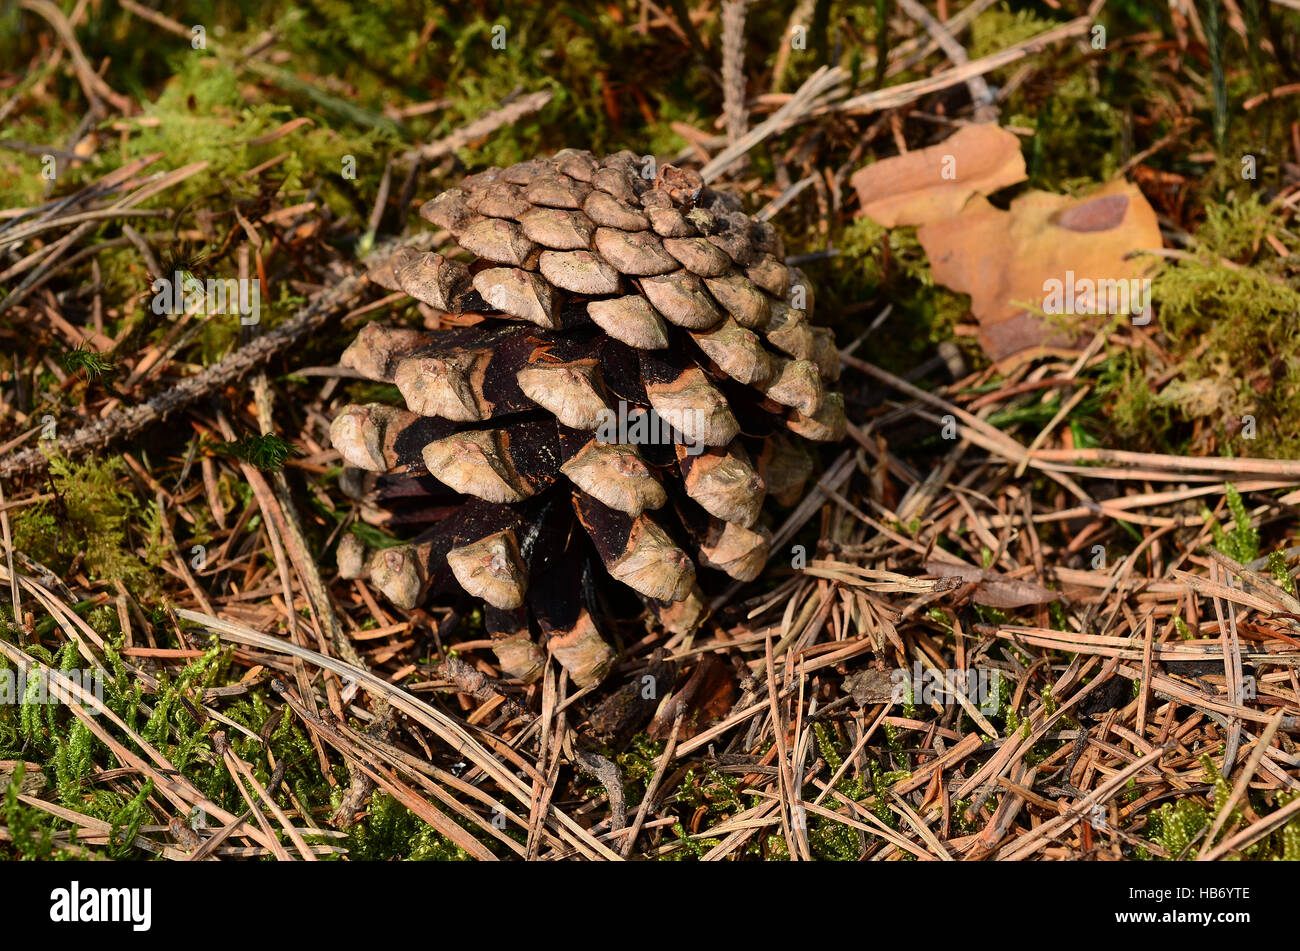 pine, pinewood, conifer, seed, cones, - Stock Image